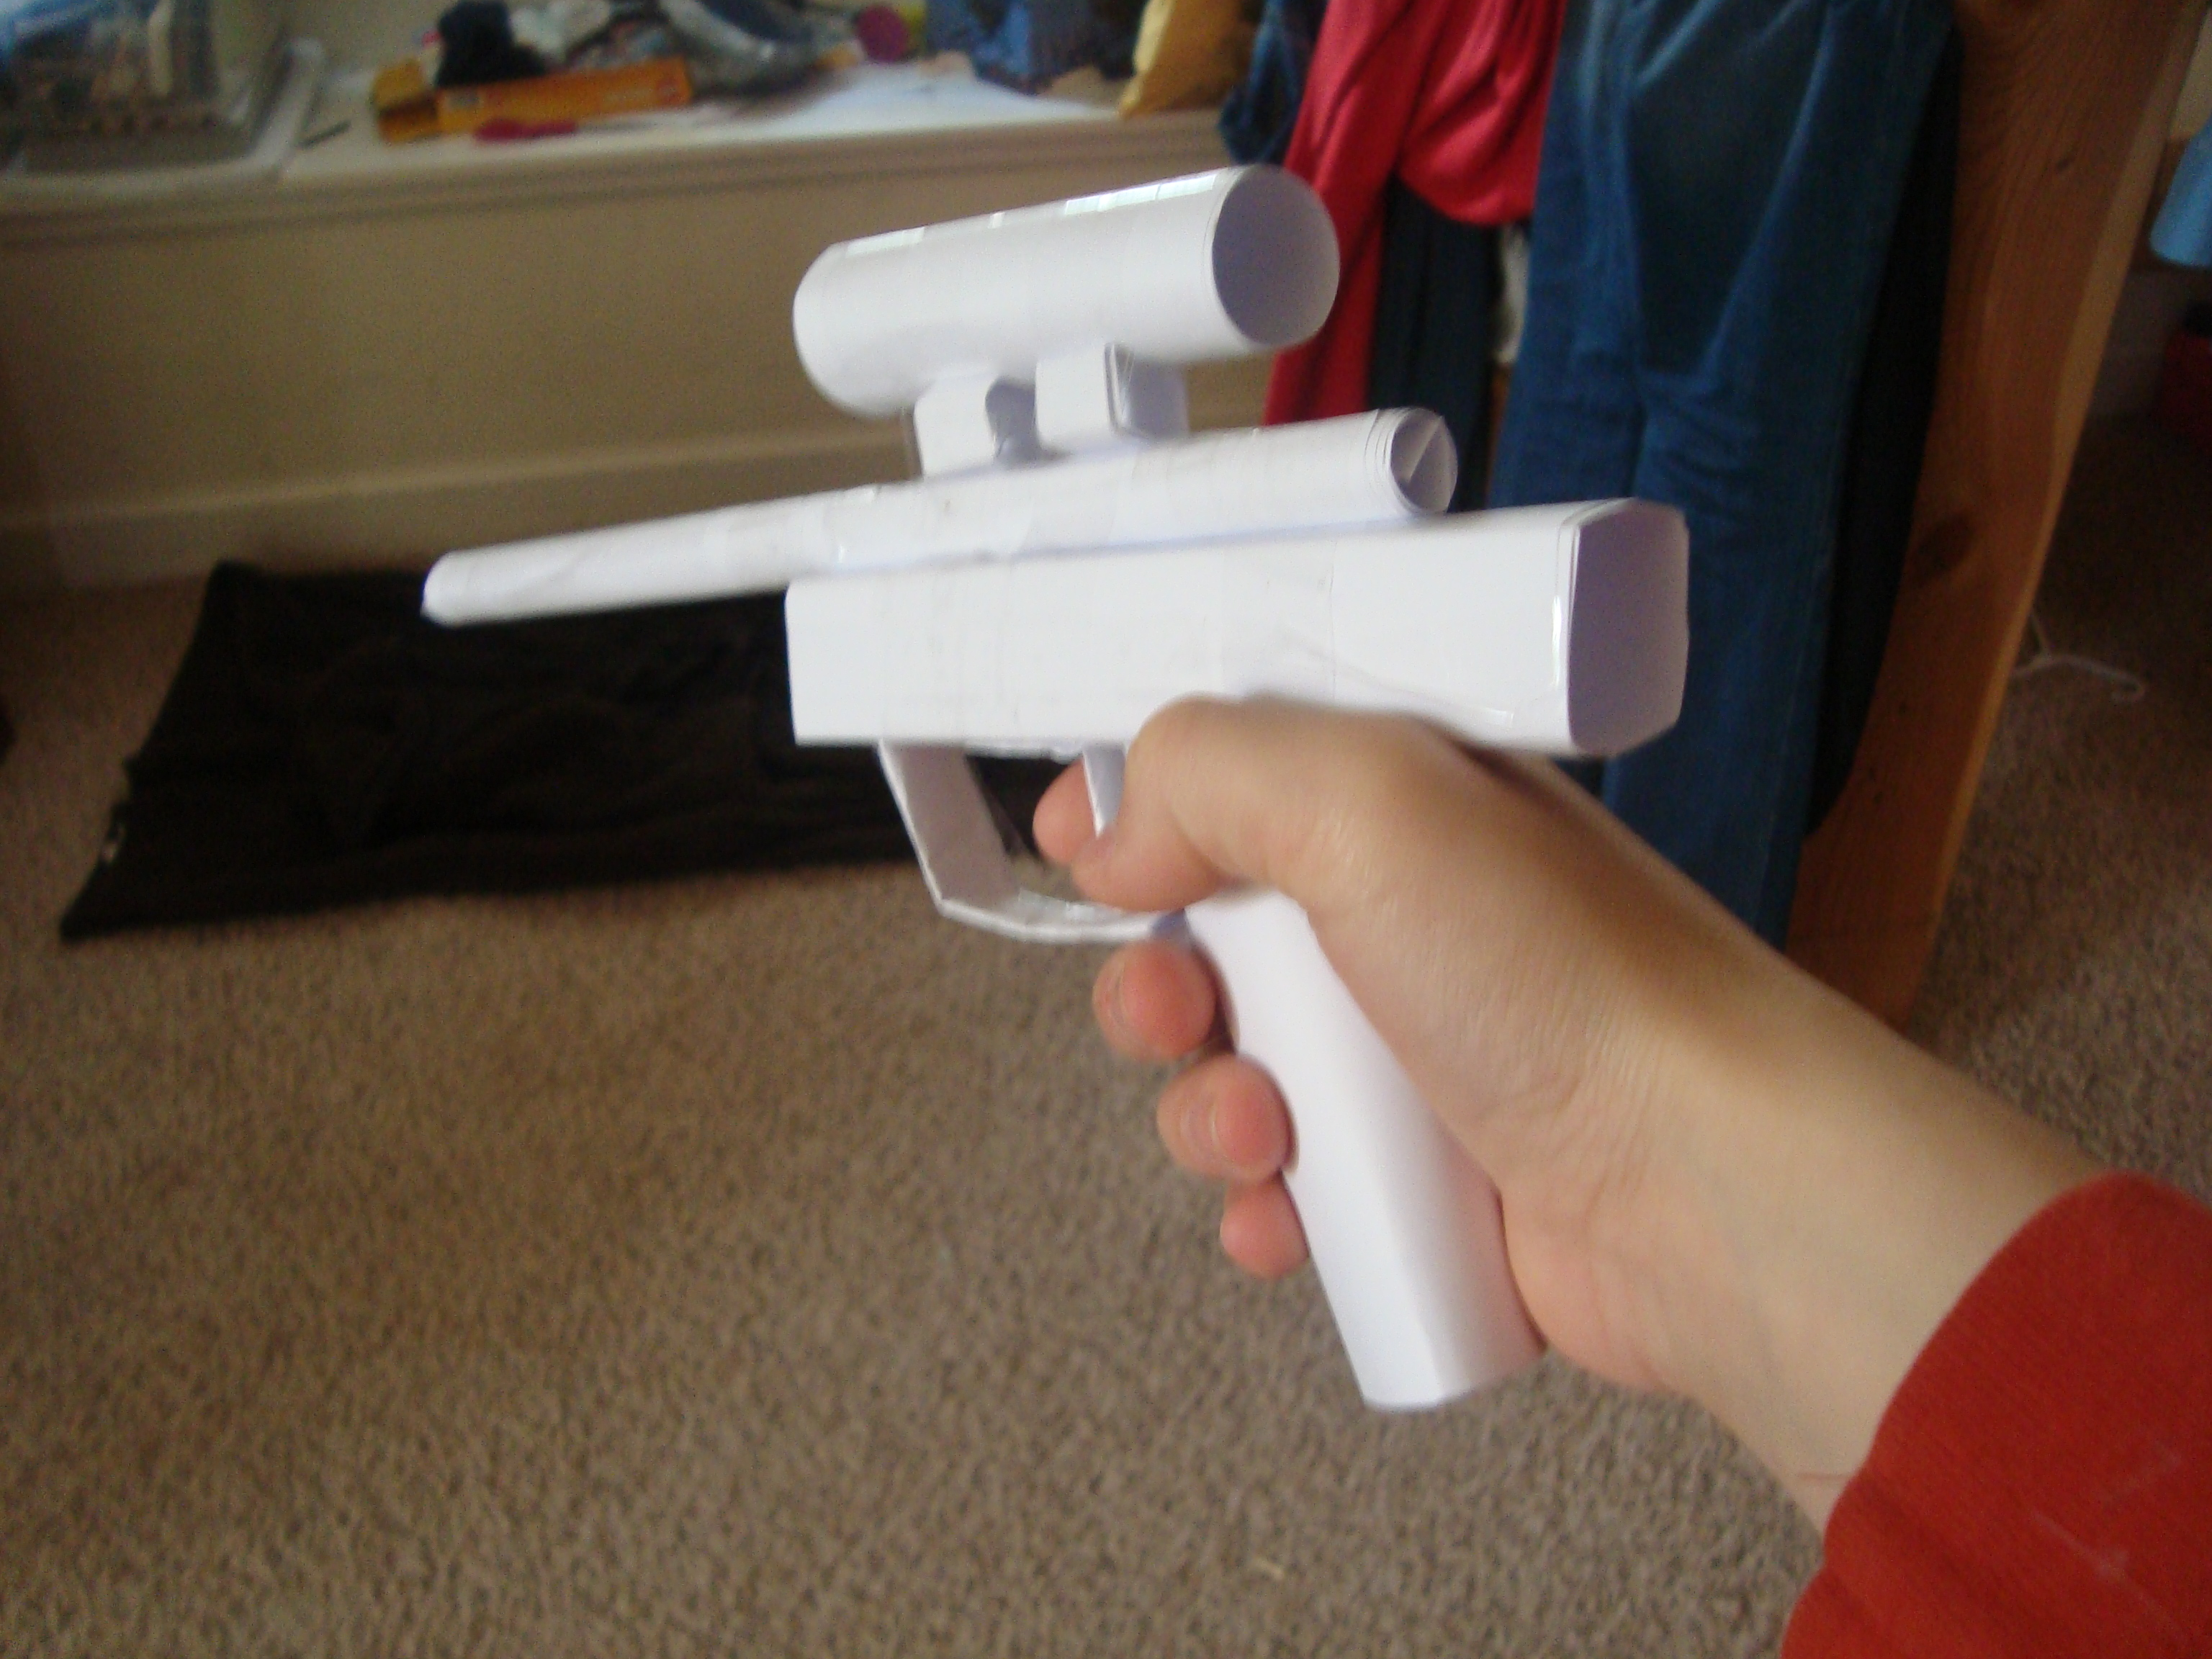 Star wars pistol